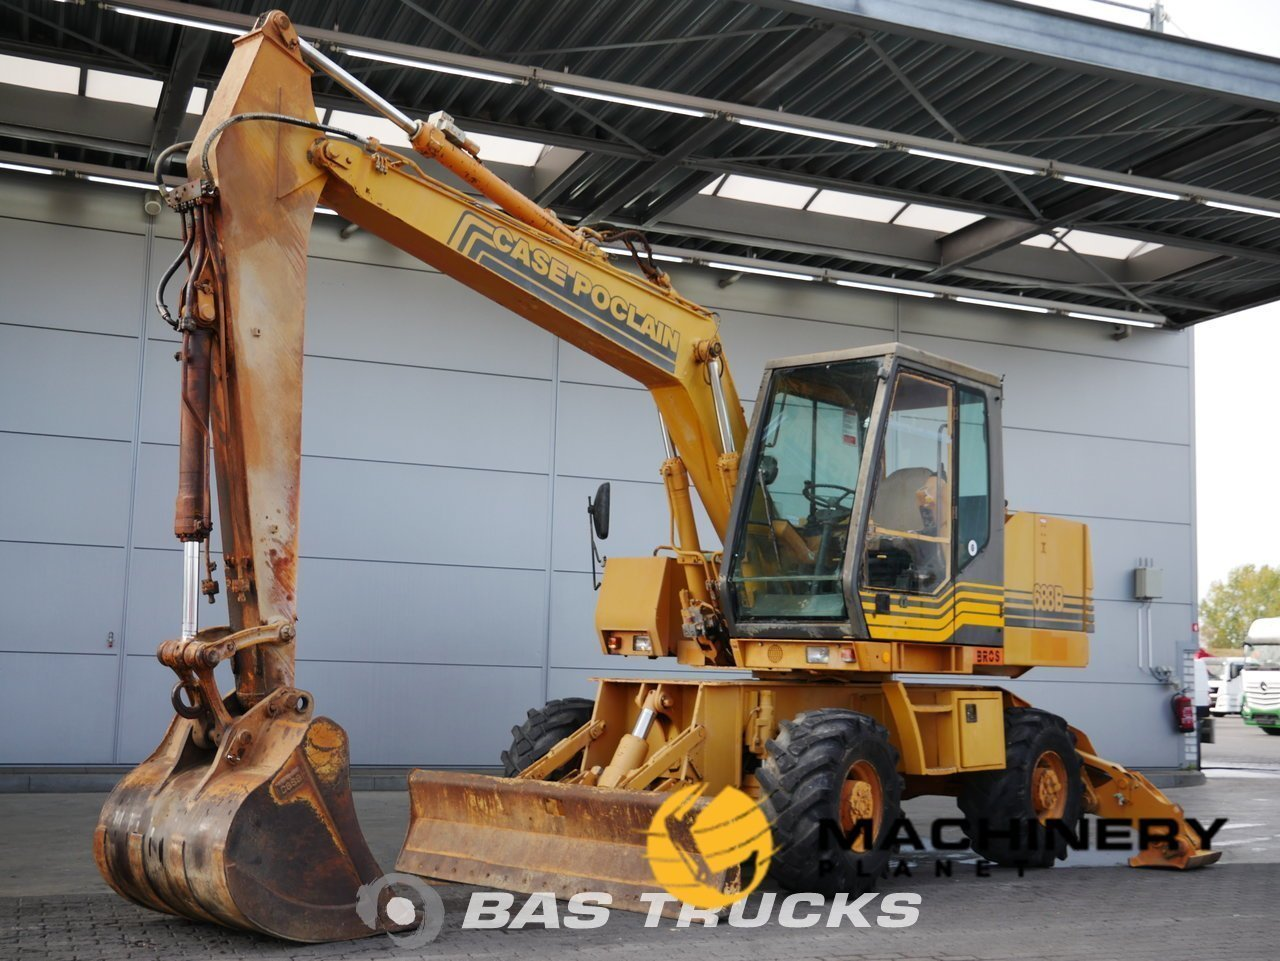 Used-Construction-equipment-Case-688B-1996_141180_1-1554202809576_5ca340b98c821-1.jpg